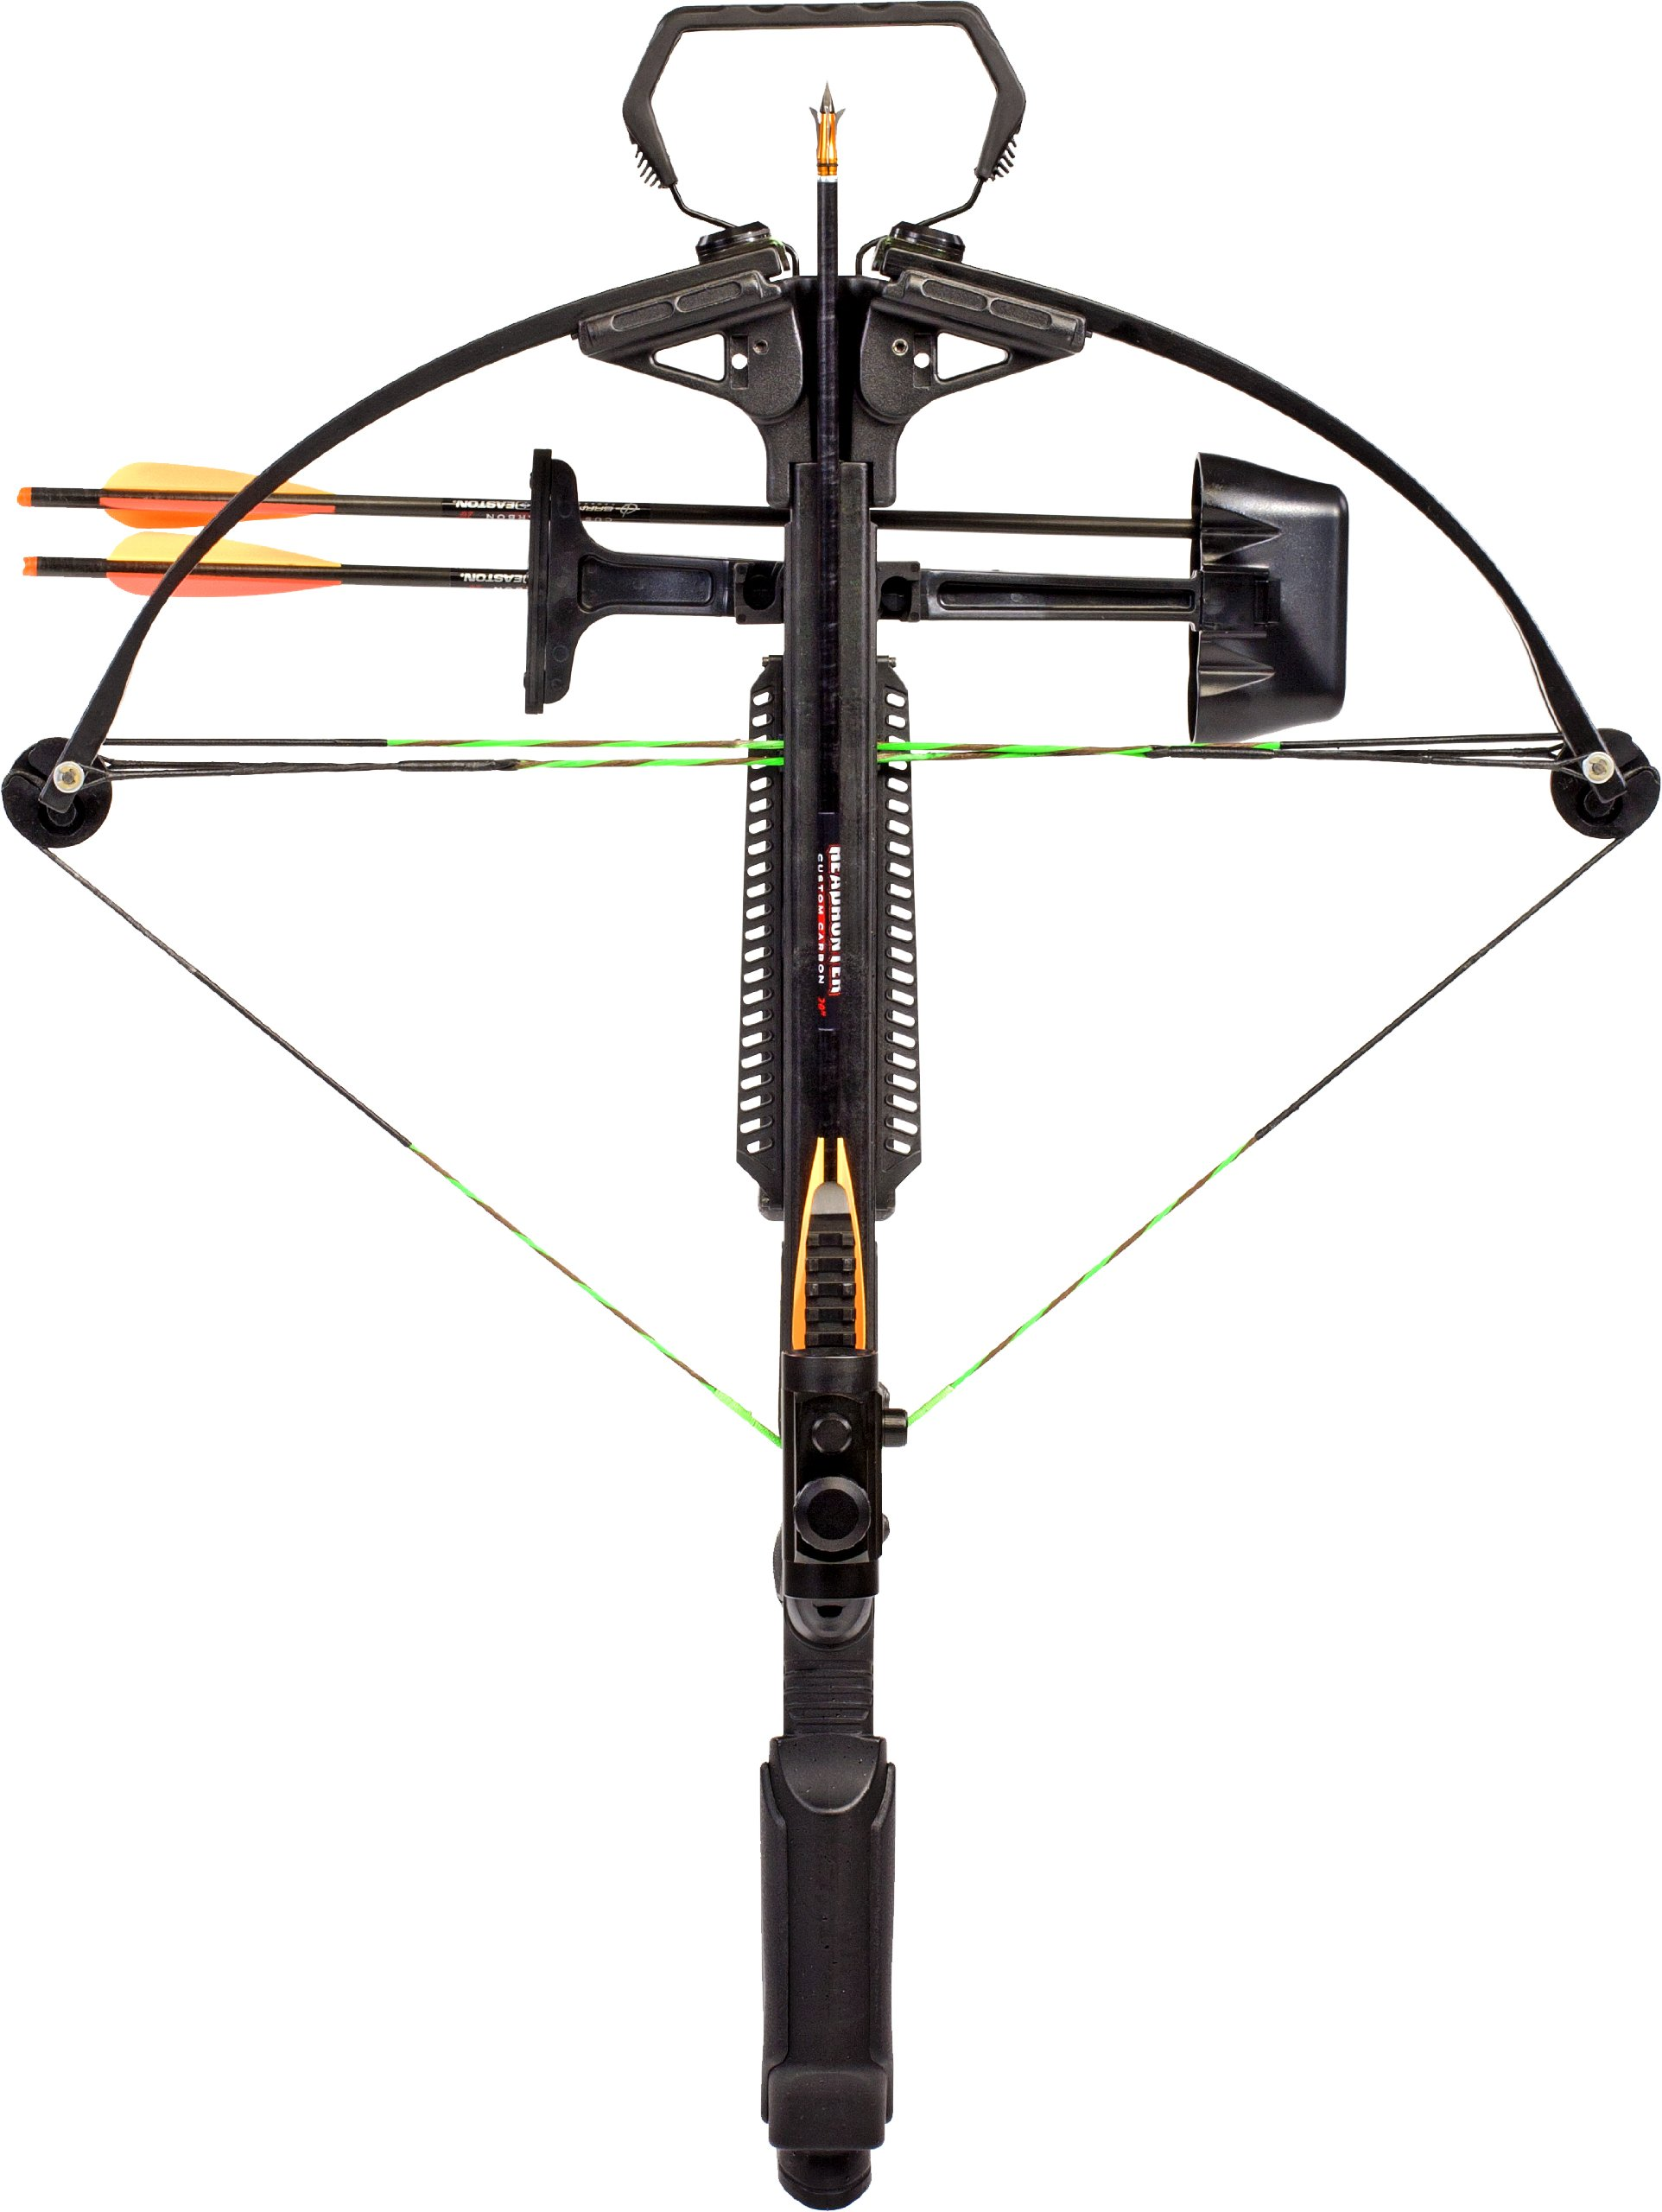 Barnett Wildcat C5 Black Crossbow Package (Quiver, 3 - 20-Inch Arrows and Premium Red Dot Sight) by Barnett (Image #4)